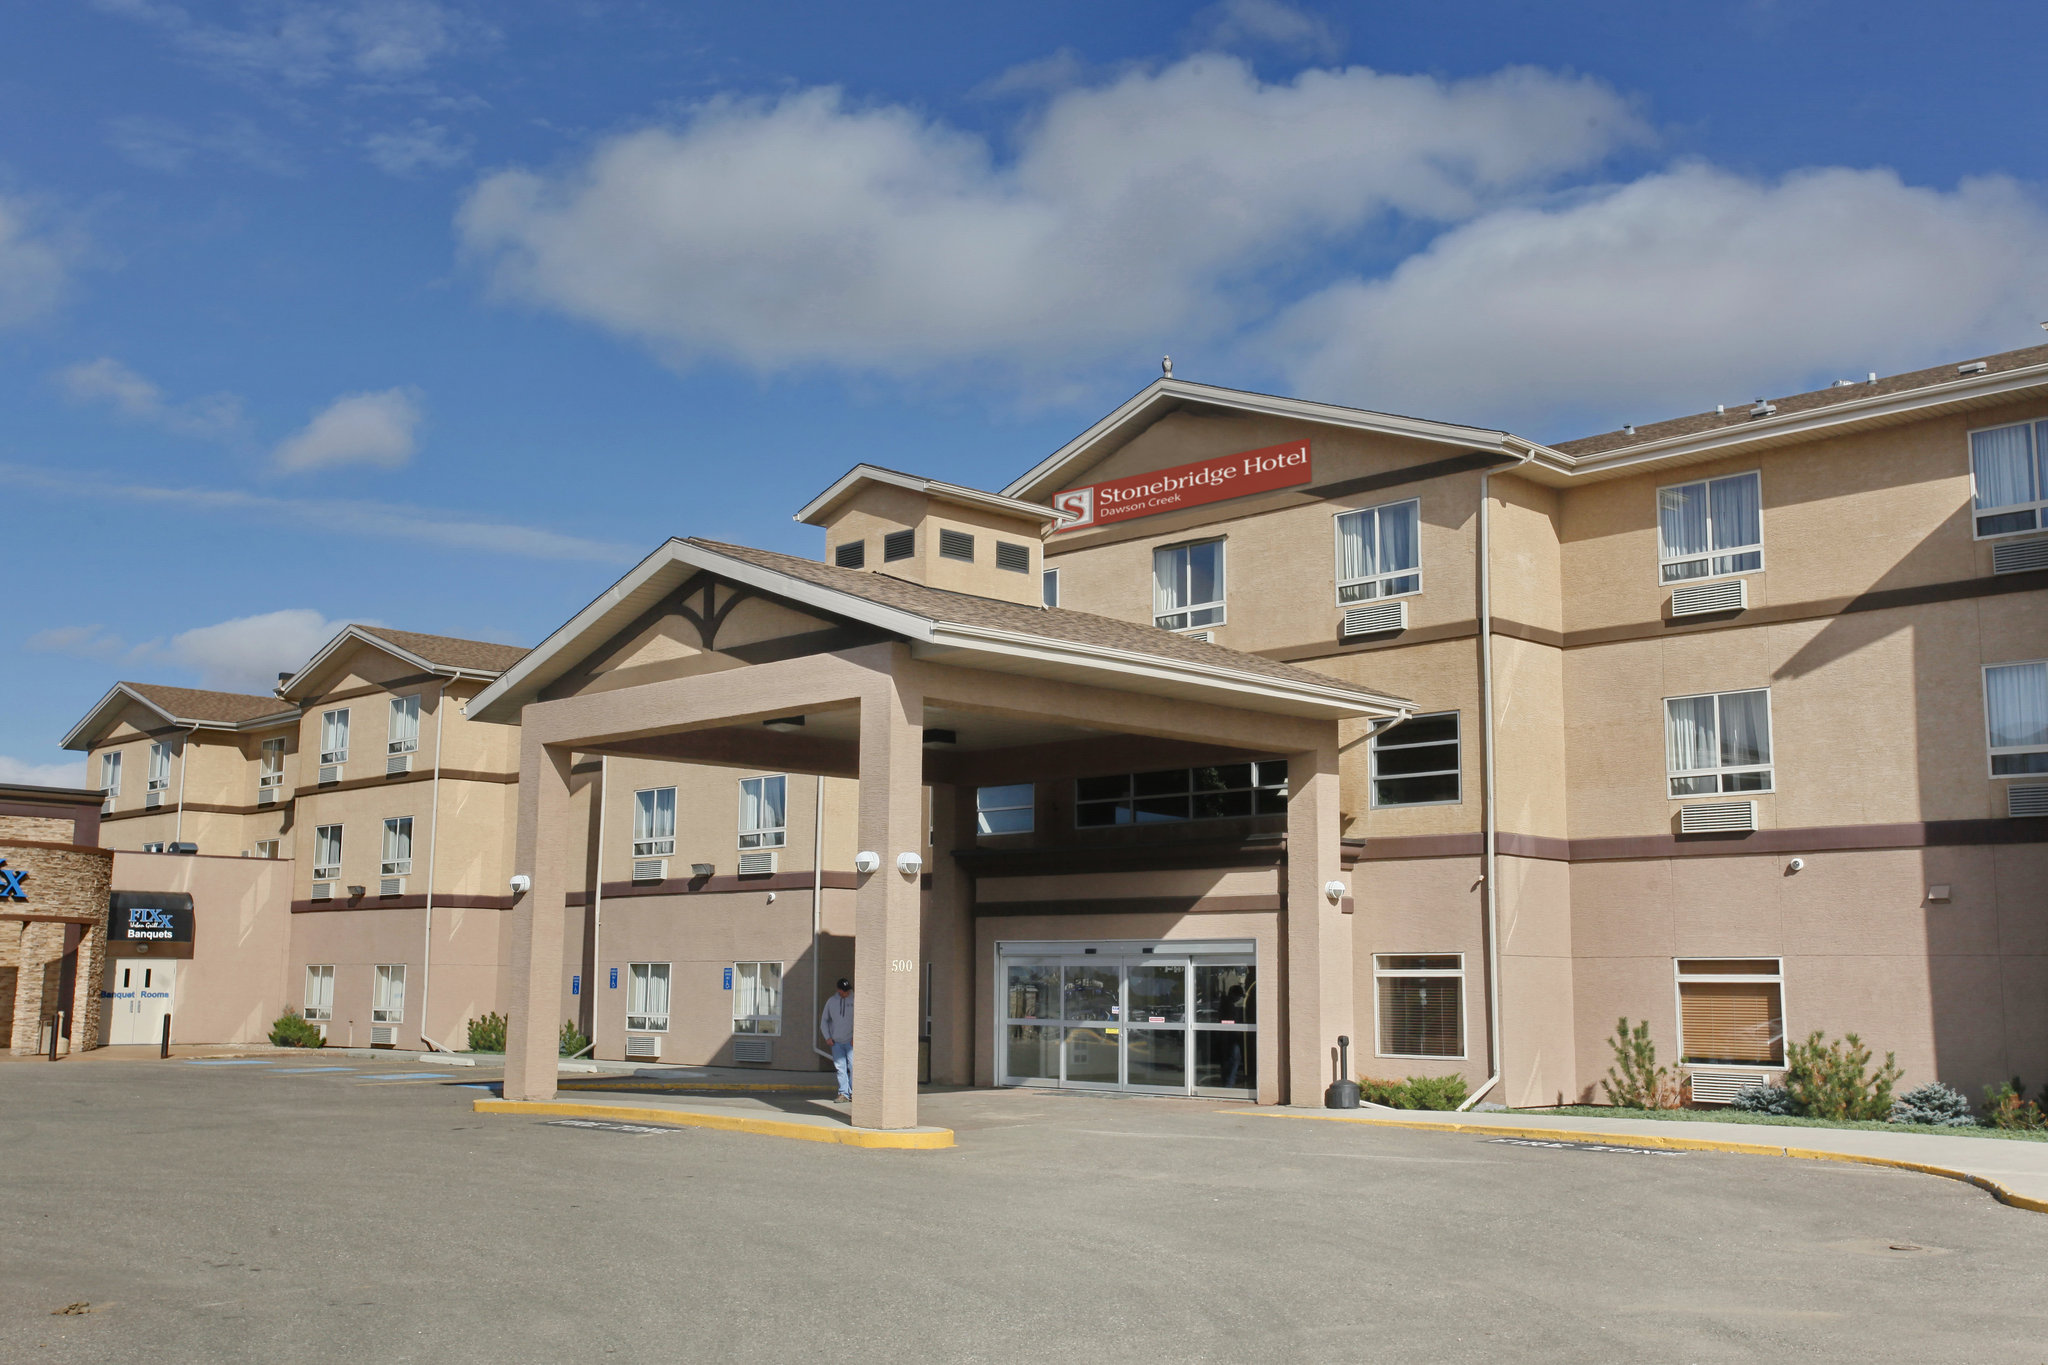 Stonebridge Hotel Dawson Creek